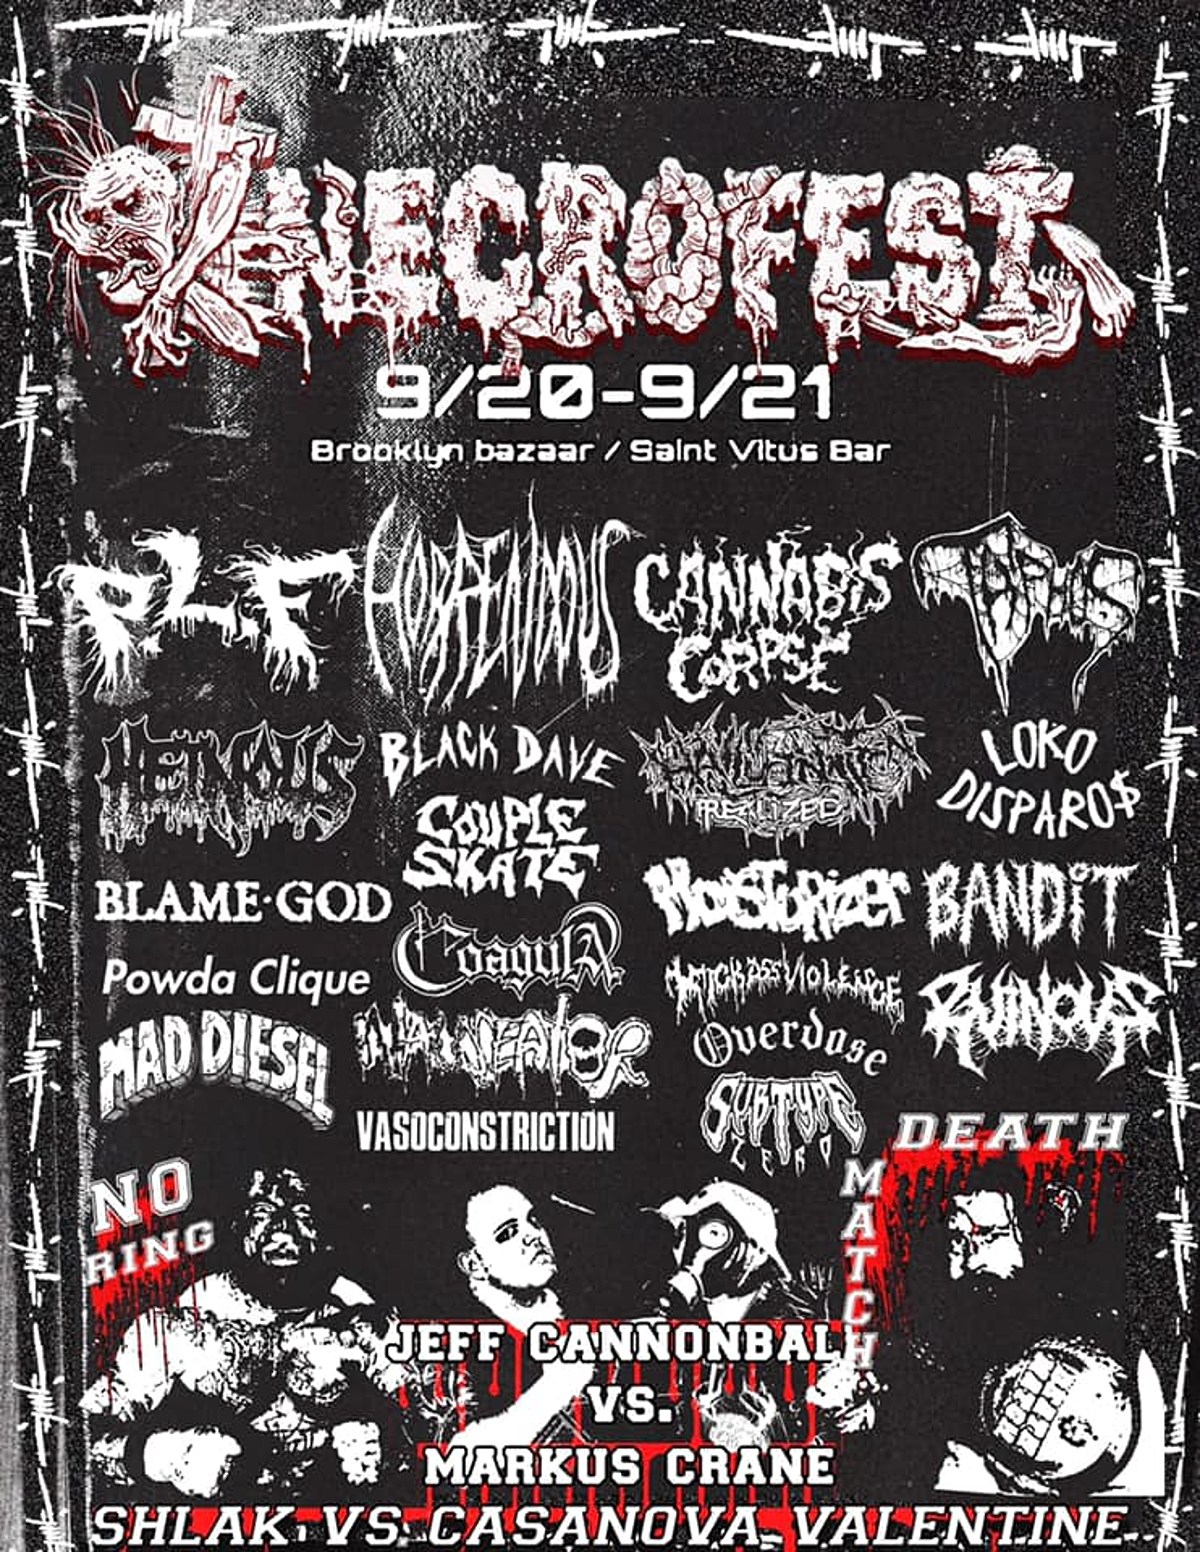 PLF, Cannabis Corpse, Horrendous more playing NYC's inaugural Necrofest